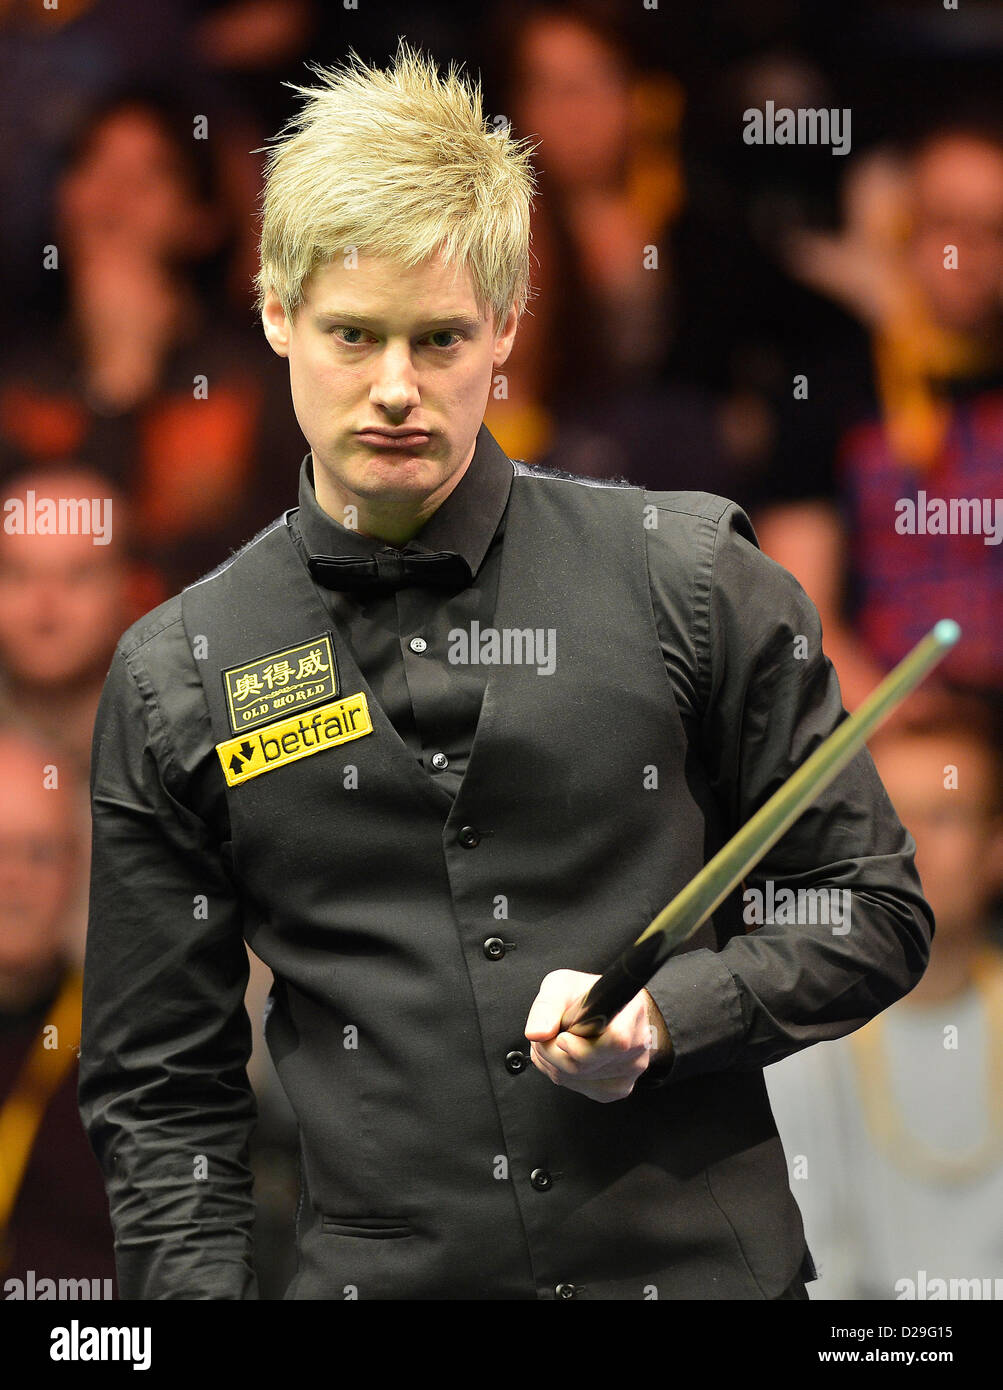 17.01.2013 London, England. Neil Robertson in action against Mark Allen during the Masters Snooker from Alexandra - Stock Image